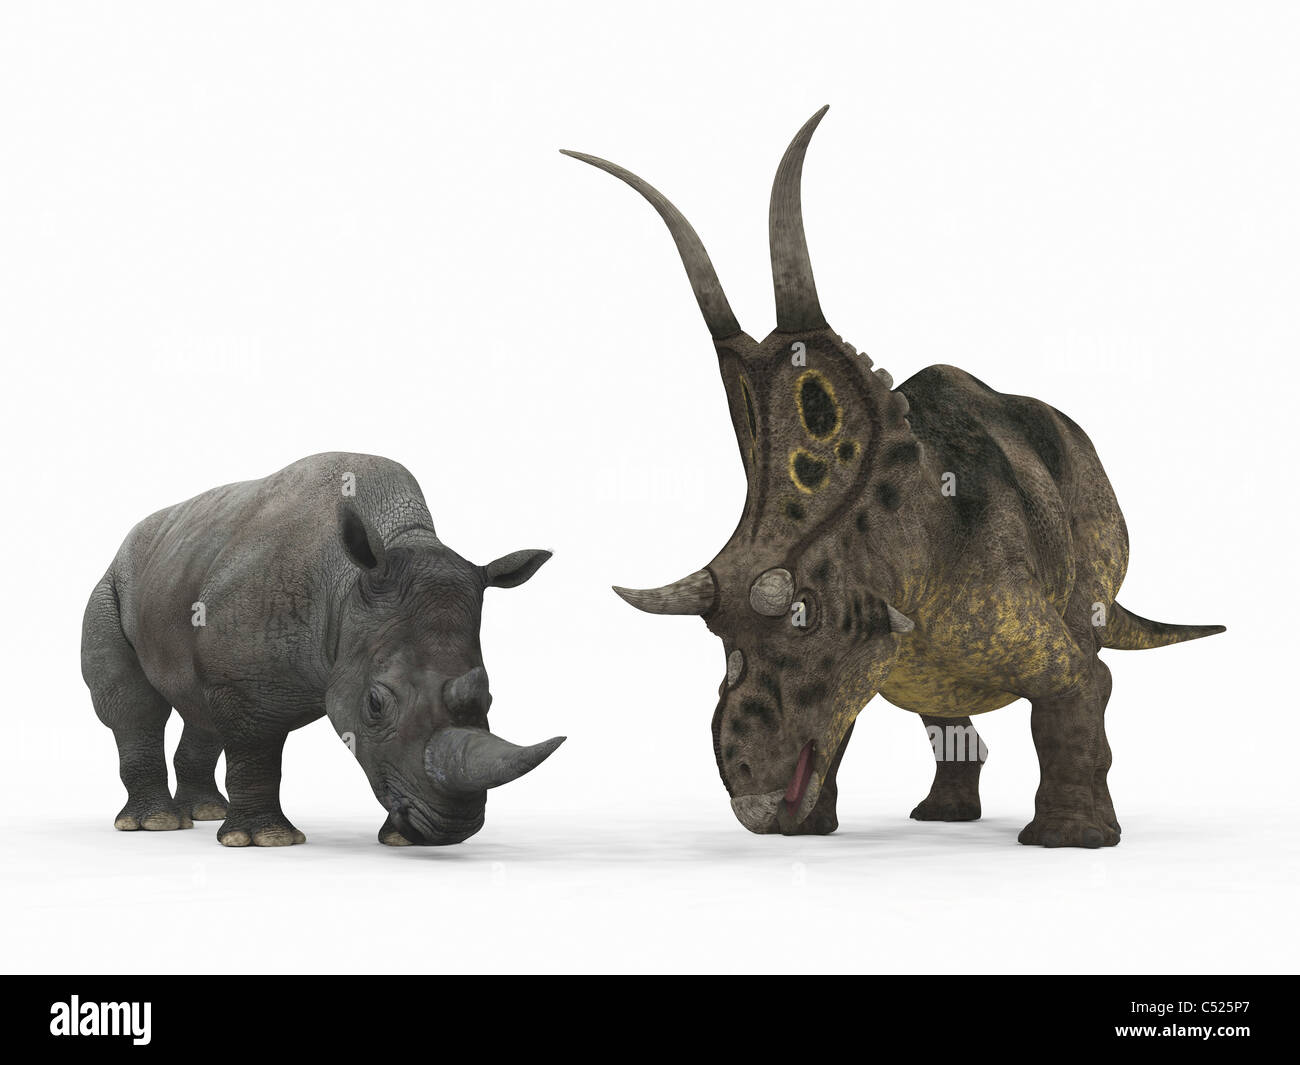 An adult Diabloceratops compared to a modern adult White Rhinoceros. - Stock Image